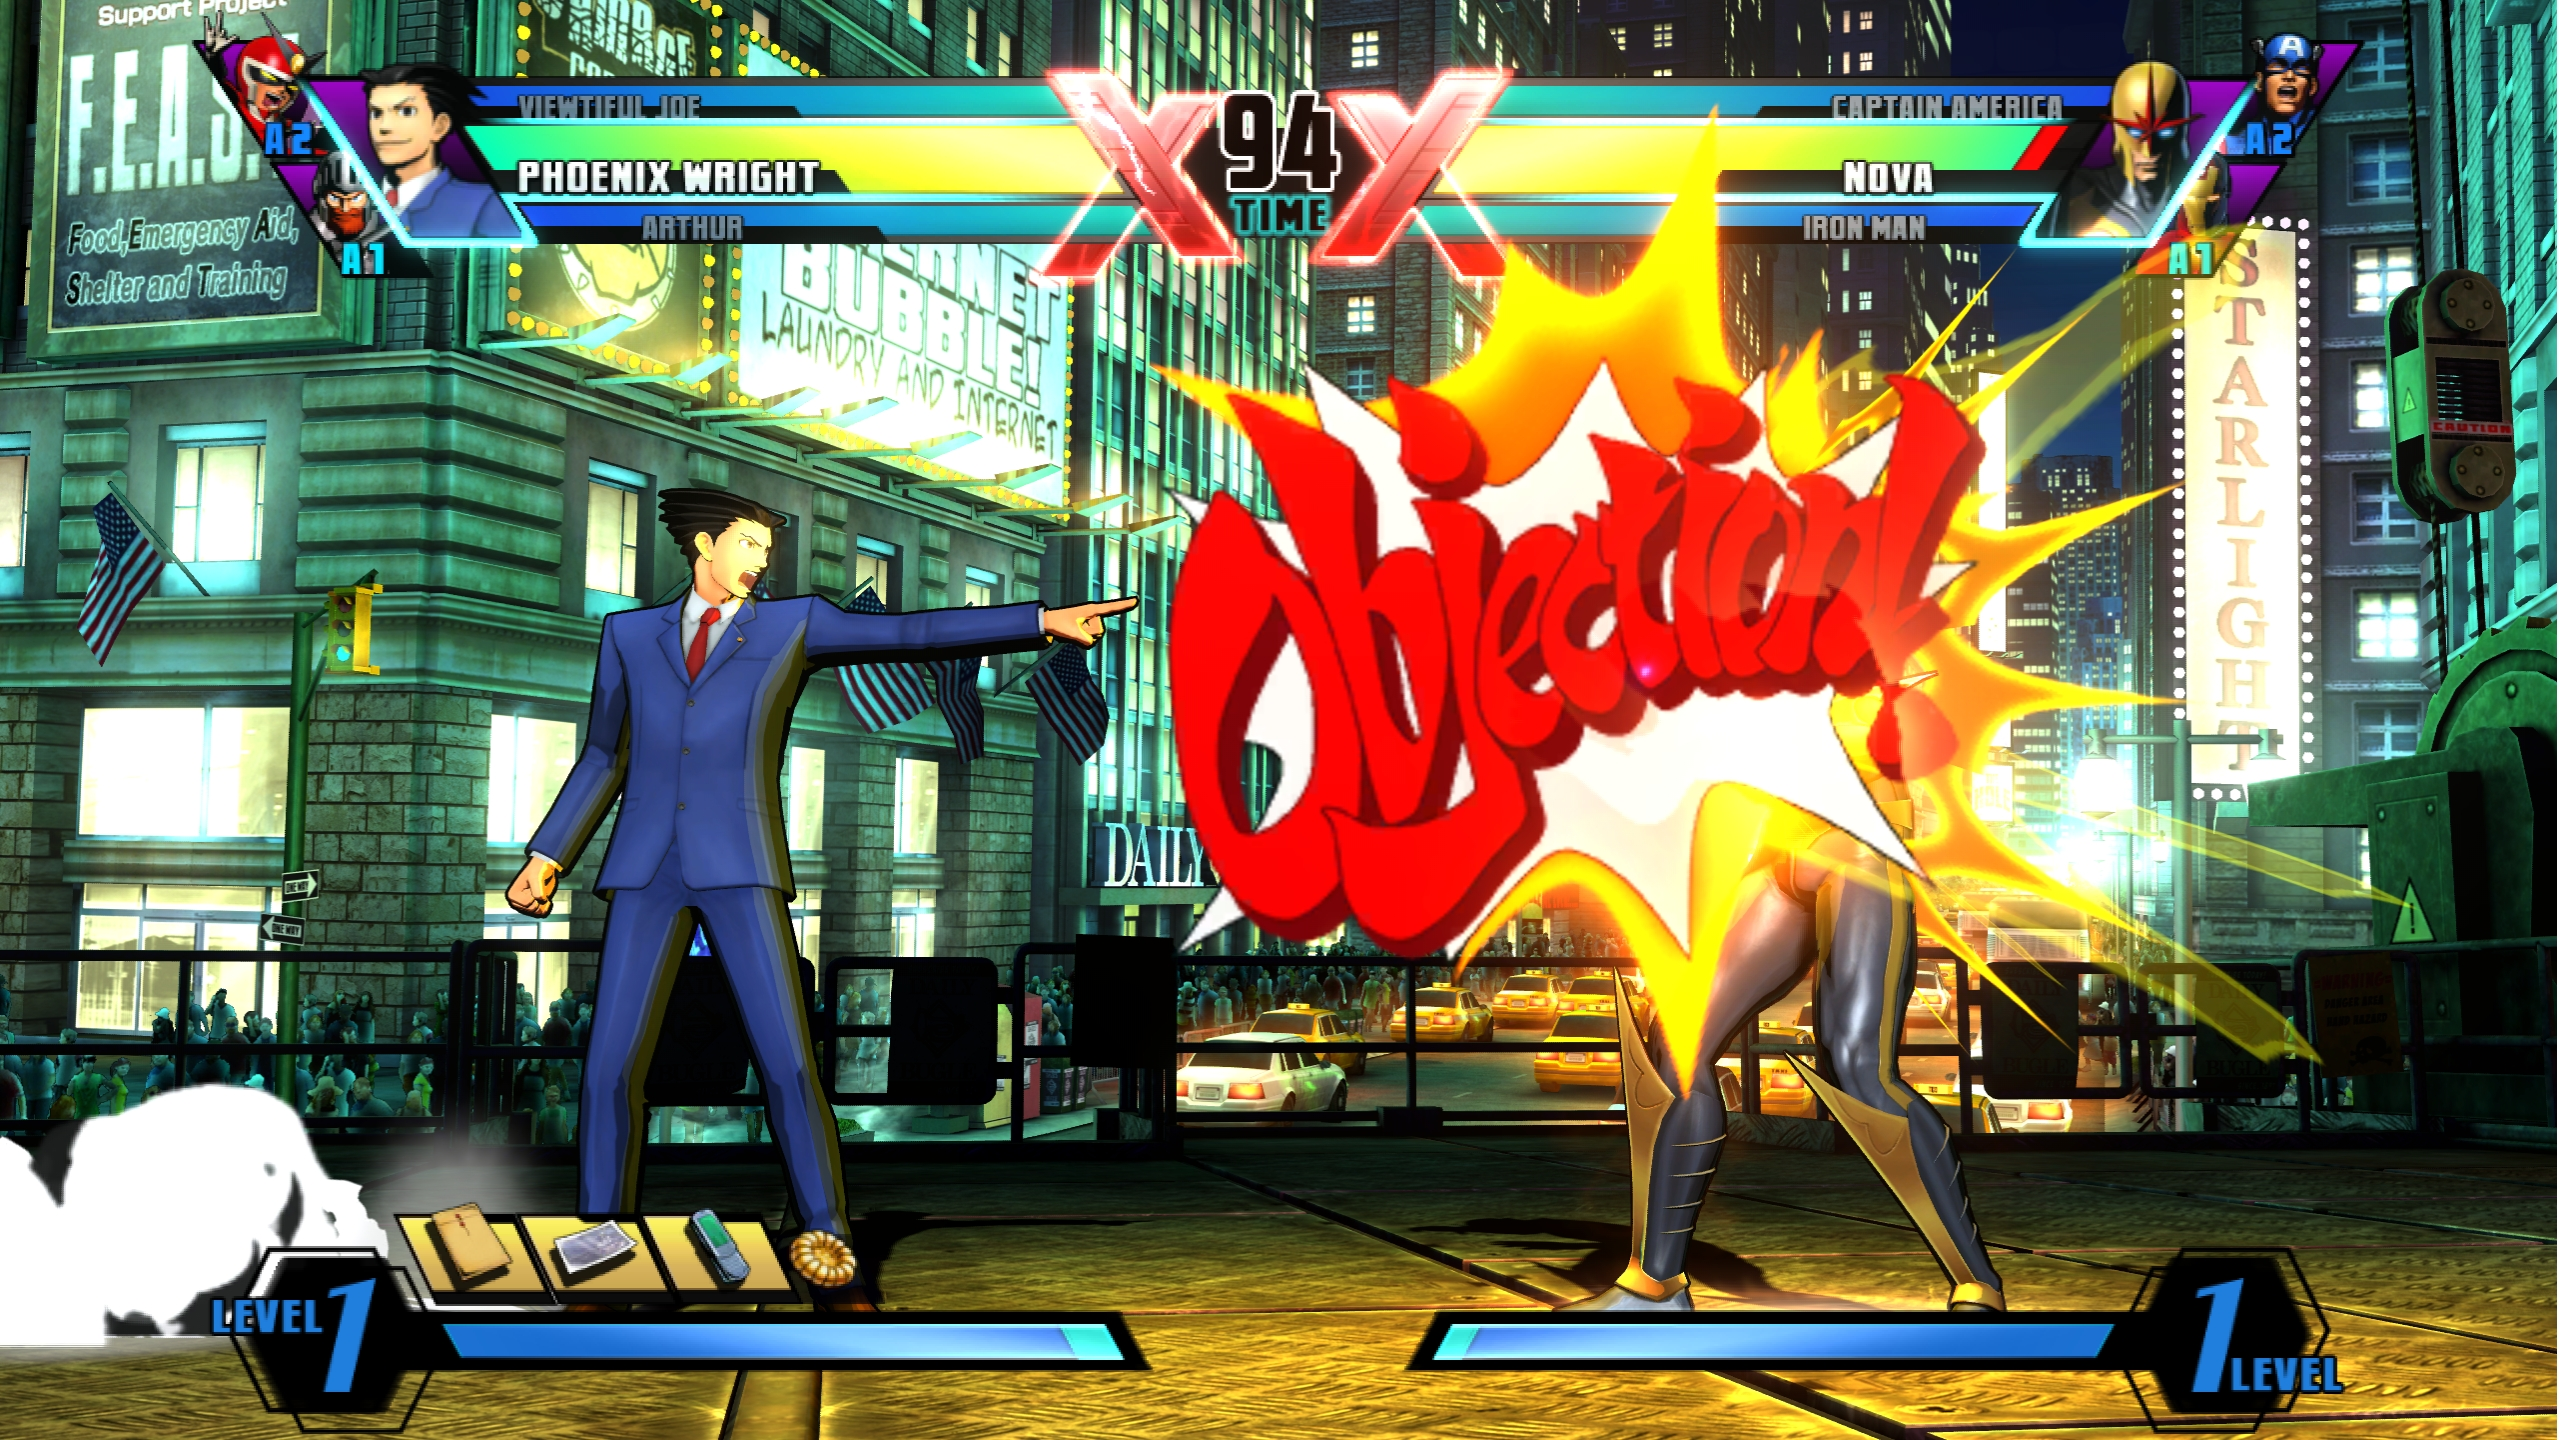 Phoenix Wright Ultimate Marvel vs Capcom 3